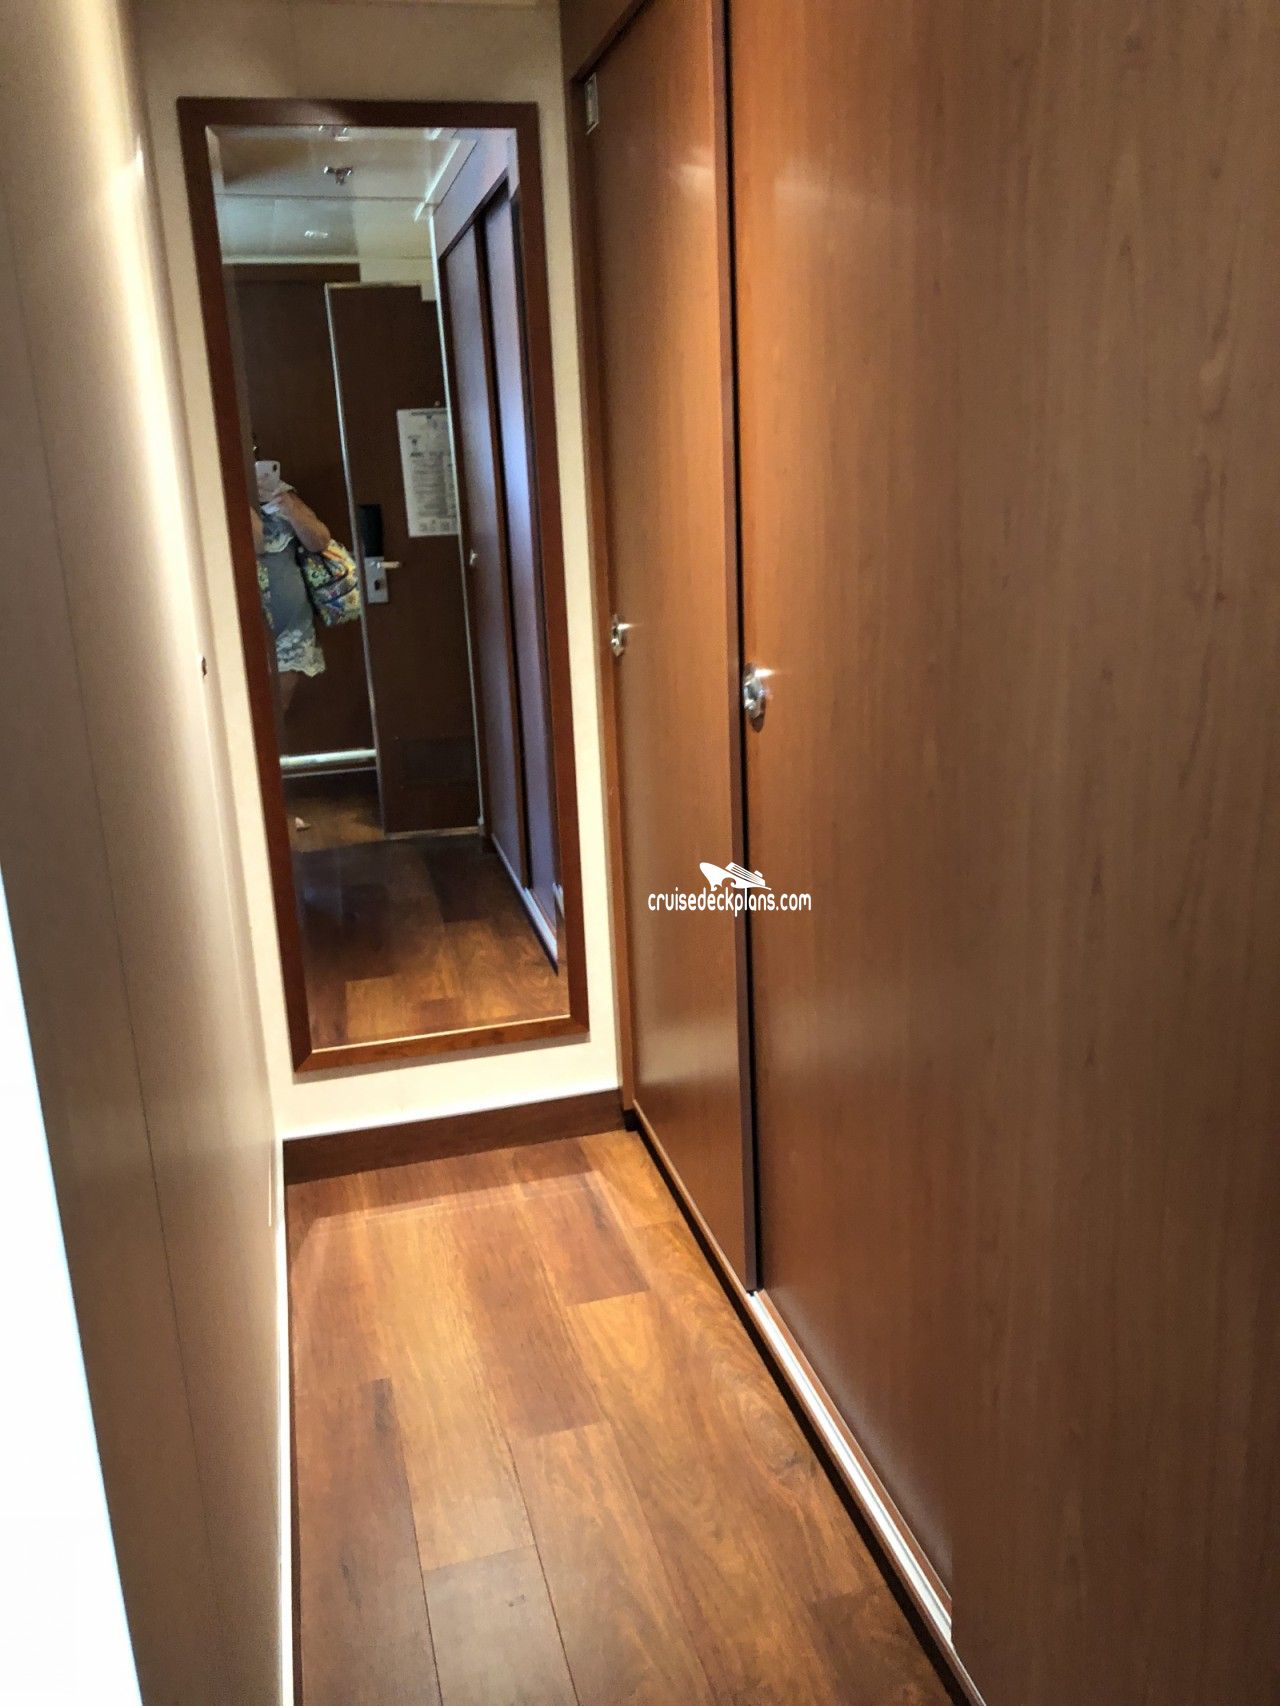 Carnival Victory Captains Suite Stateroom